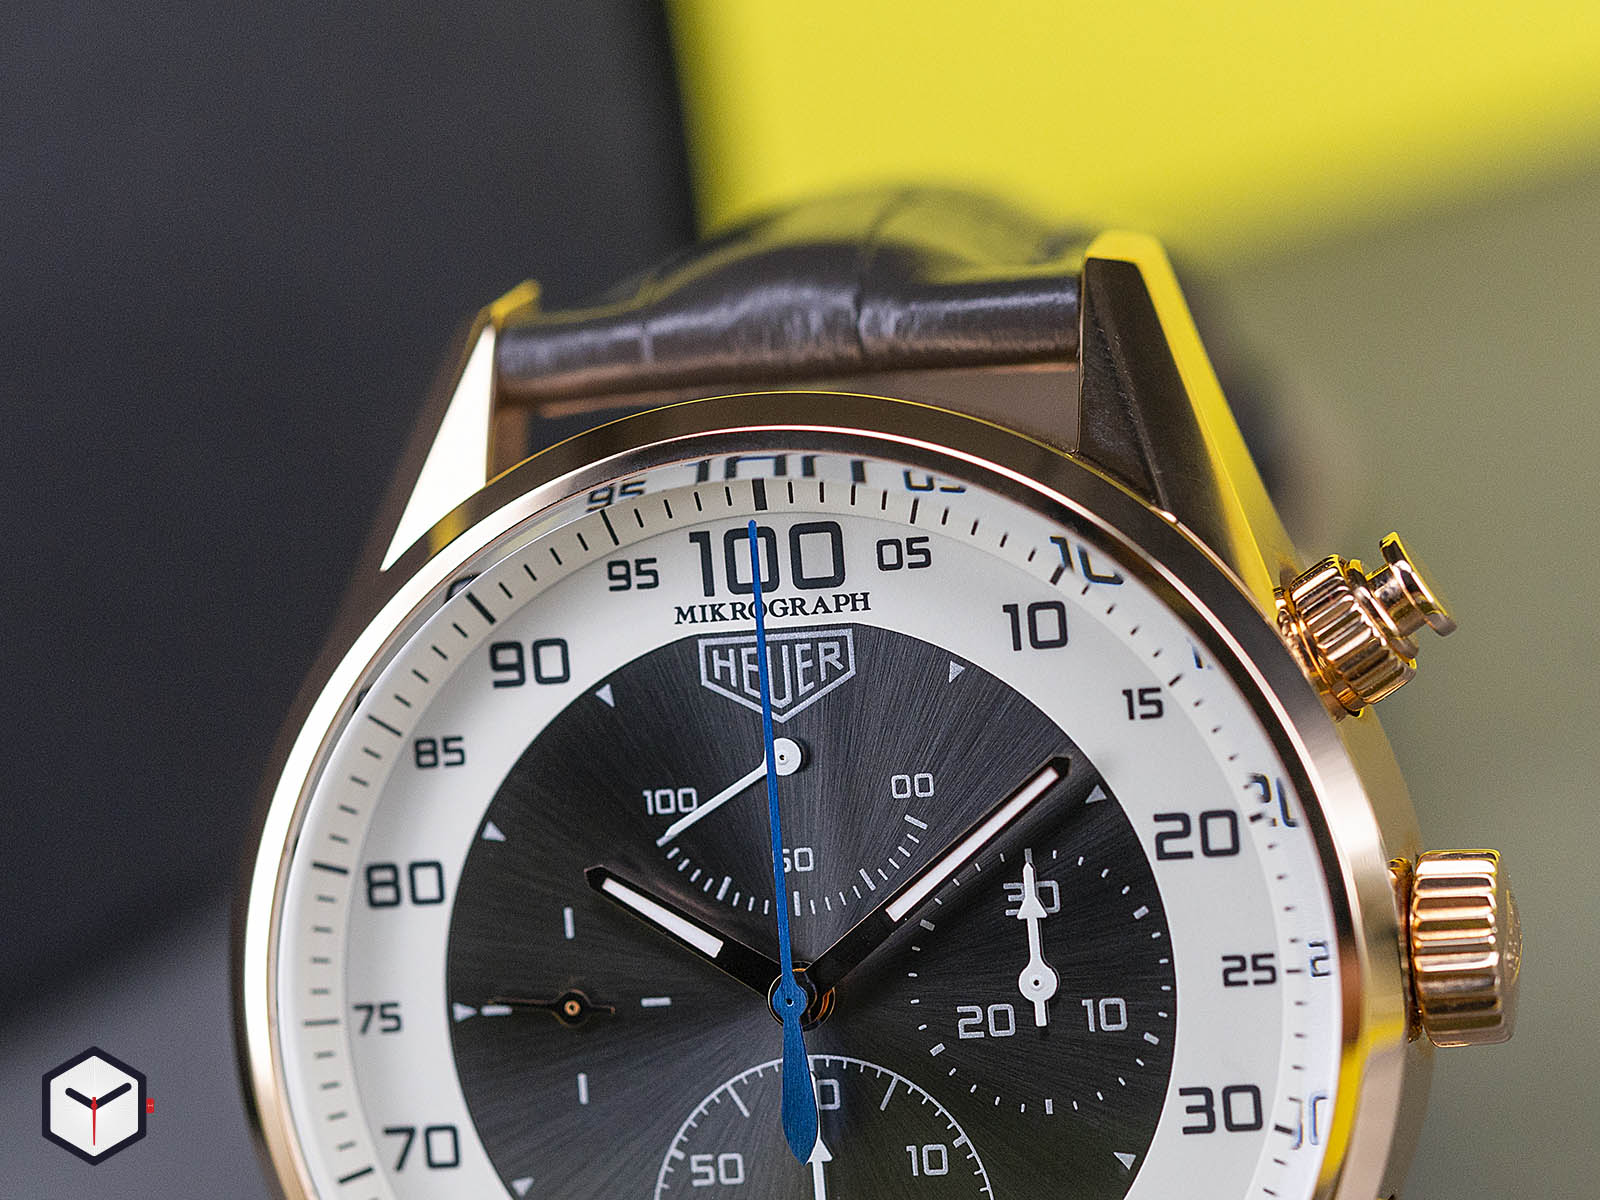 tag-heuer-carrera-mikrograph-1-100th-of-a-second-chronograph-3.jpg